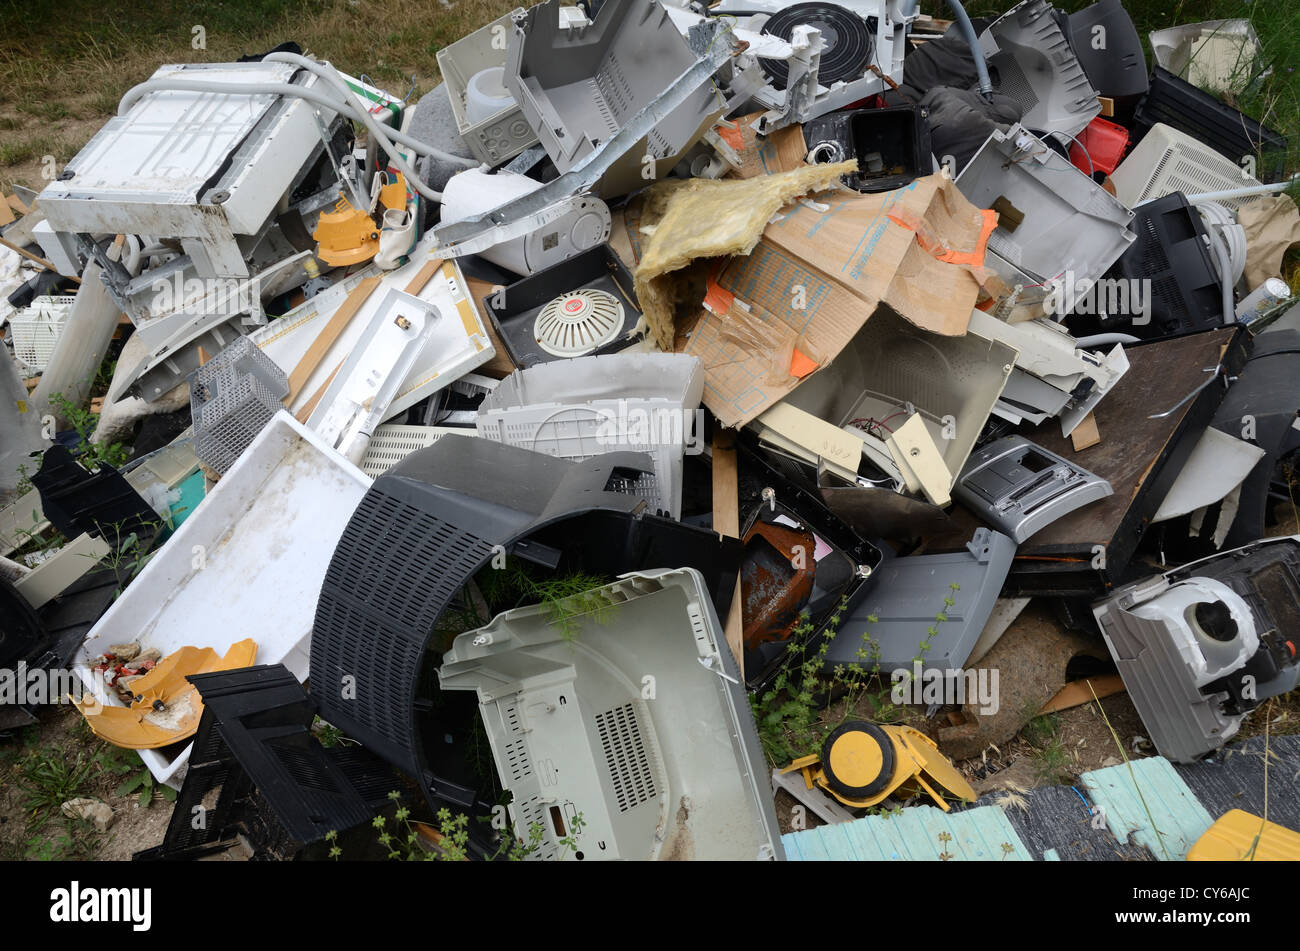 Discarded Computers on Waste Dump - Stock Image